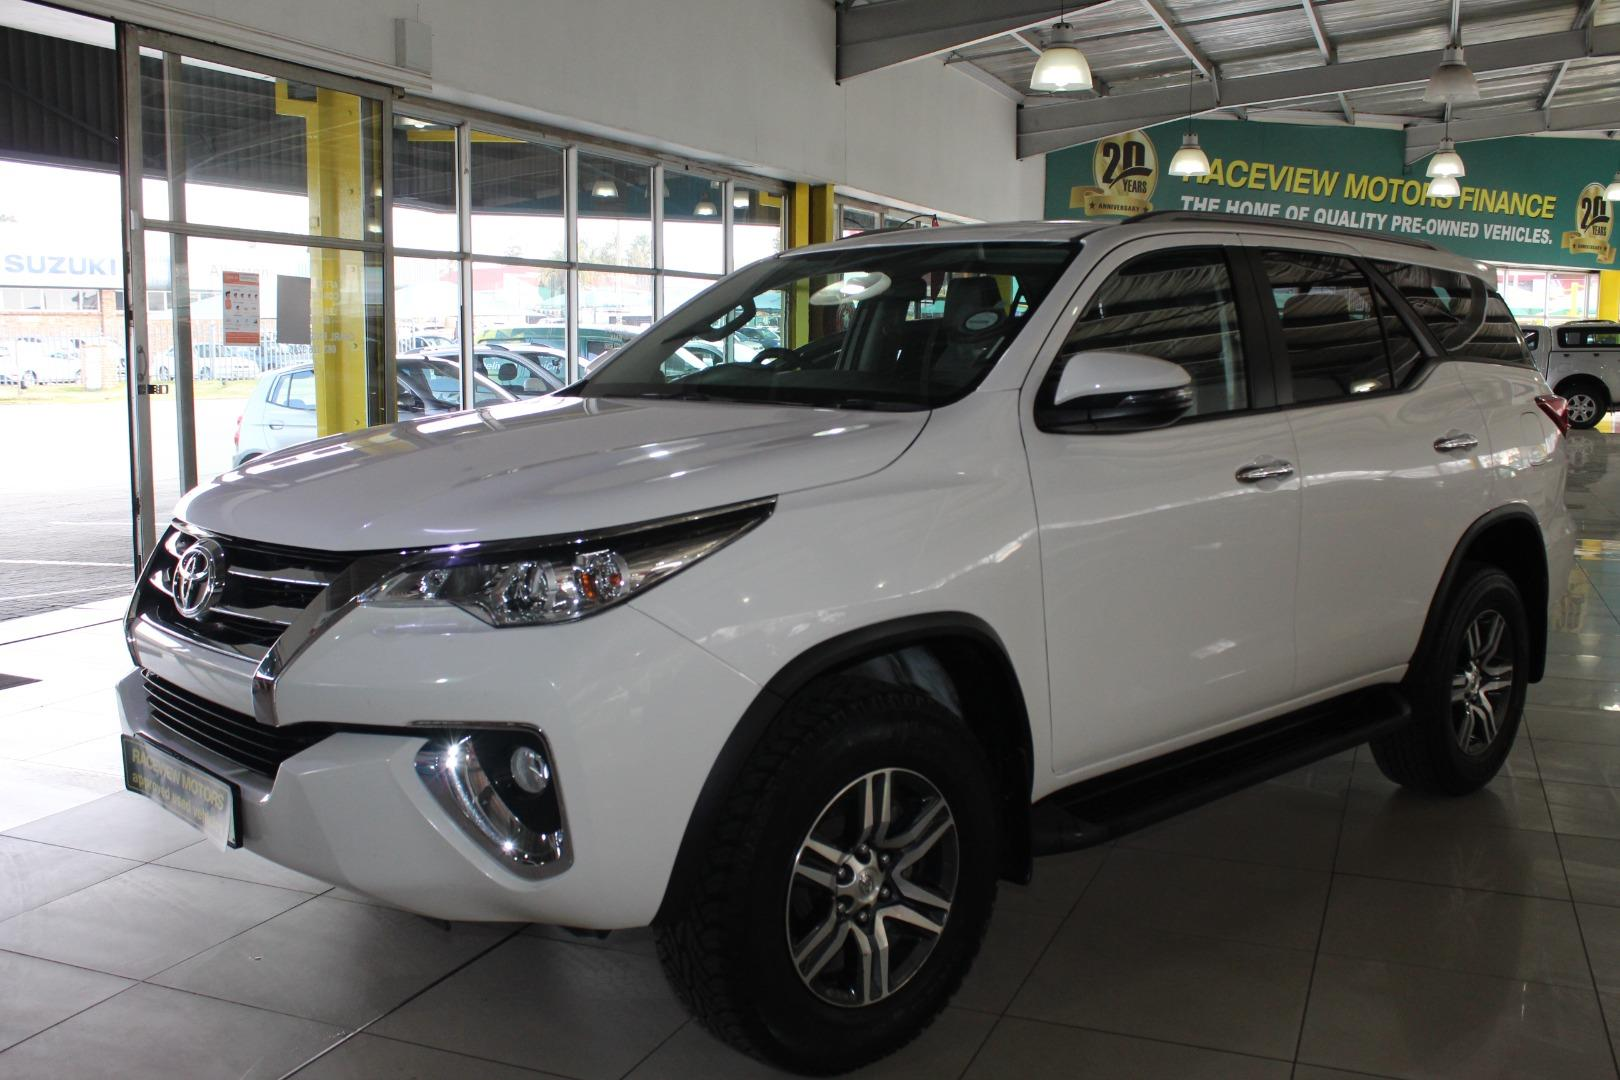 2020 Toyota Fortuner 2.4GD-6 Auto- Picture 2